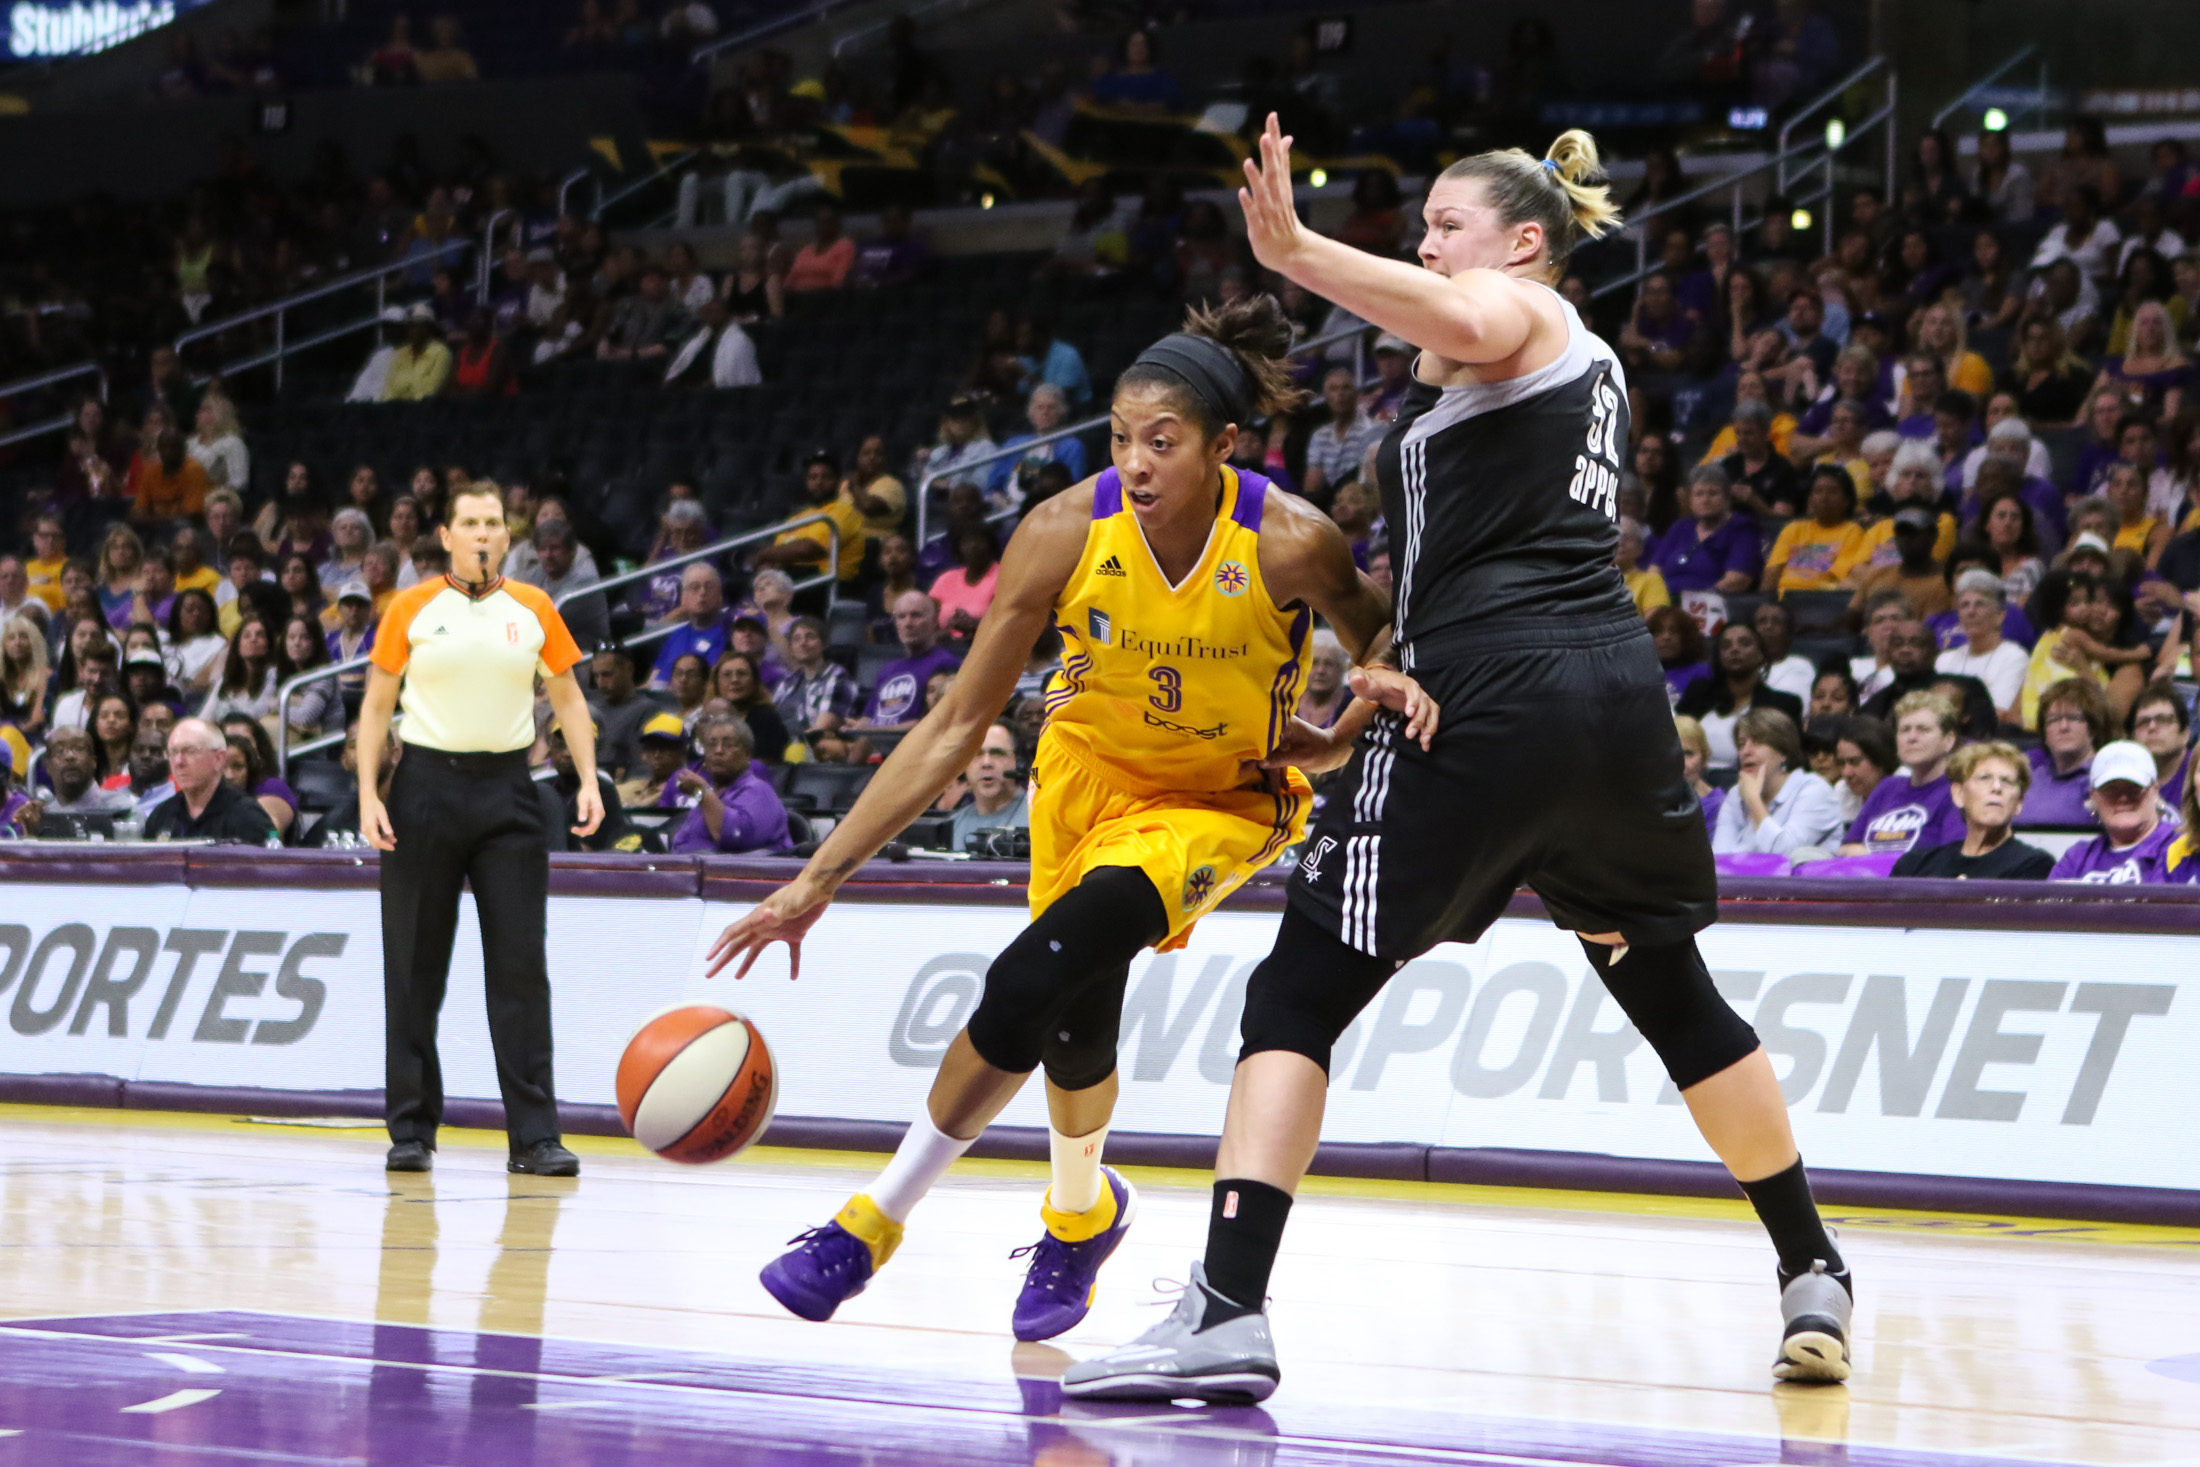 Los Angeles Sparks Candace Parker finding a hole in the defense. Photo by Jevone Moore